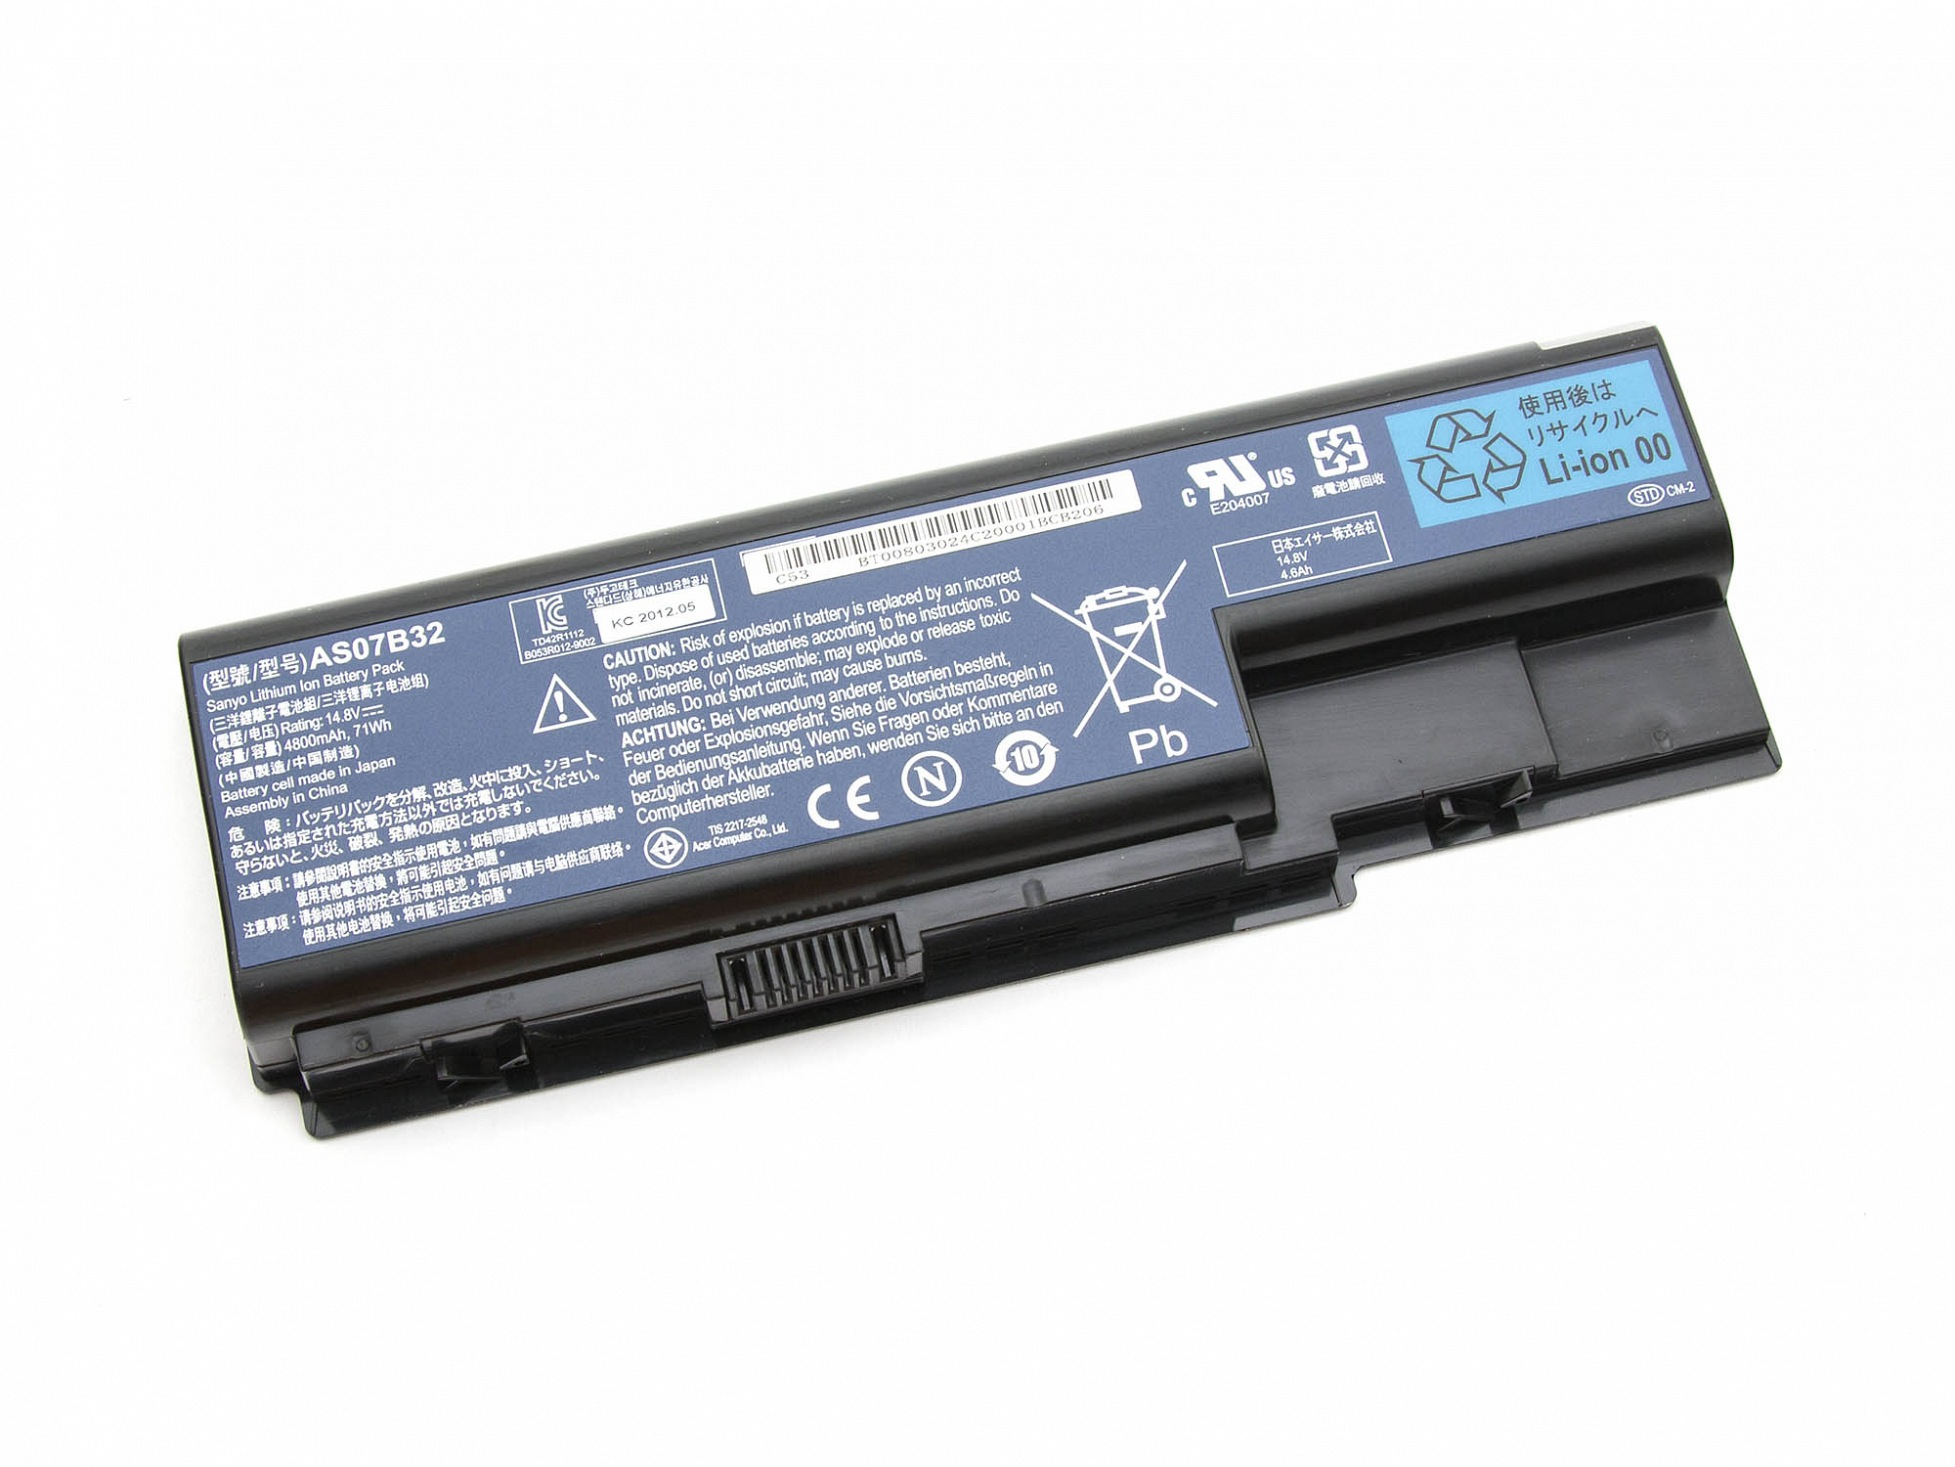 batterie pour acer aspire 7320 7330 7500 7735 7736 7920 8530 ordinateur 8800mah ebay. Black Bedroom Furniture Sets. Home Design Ideas